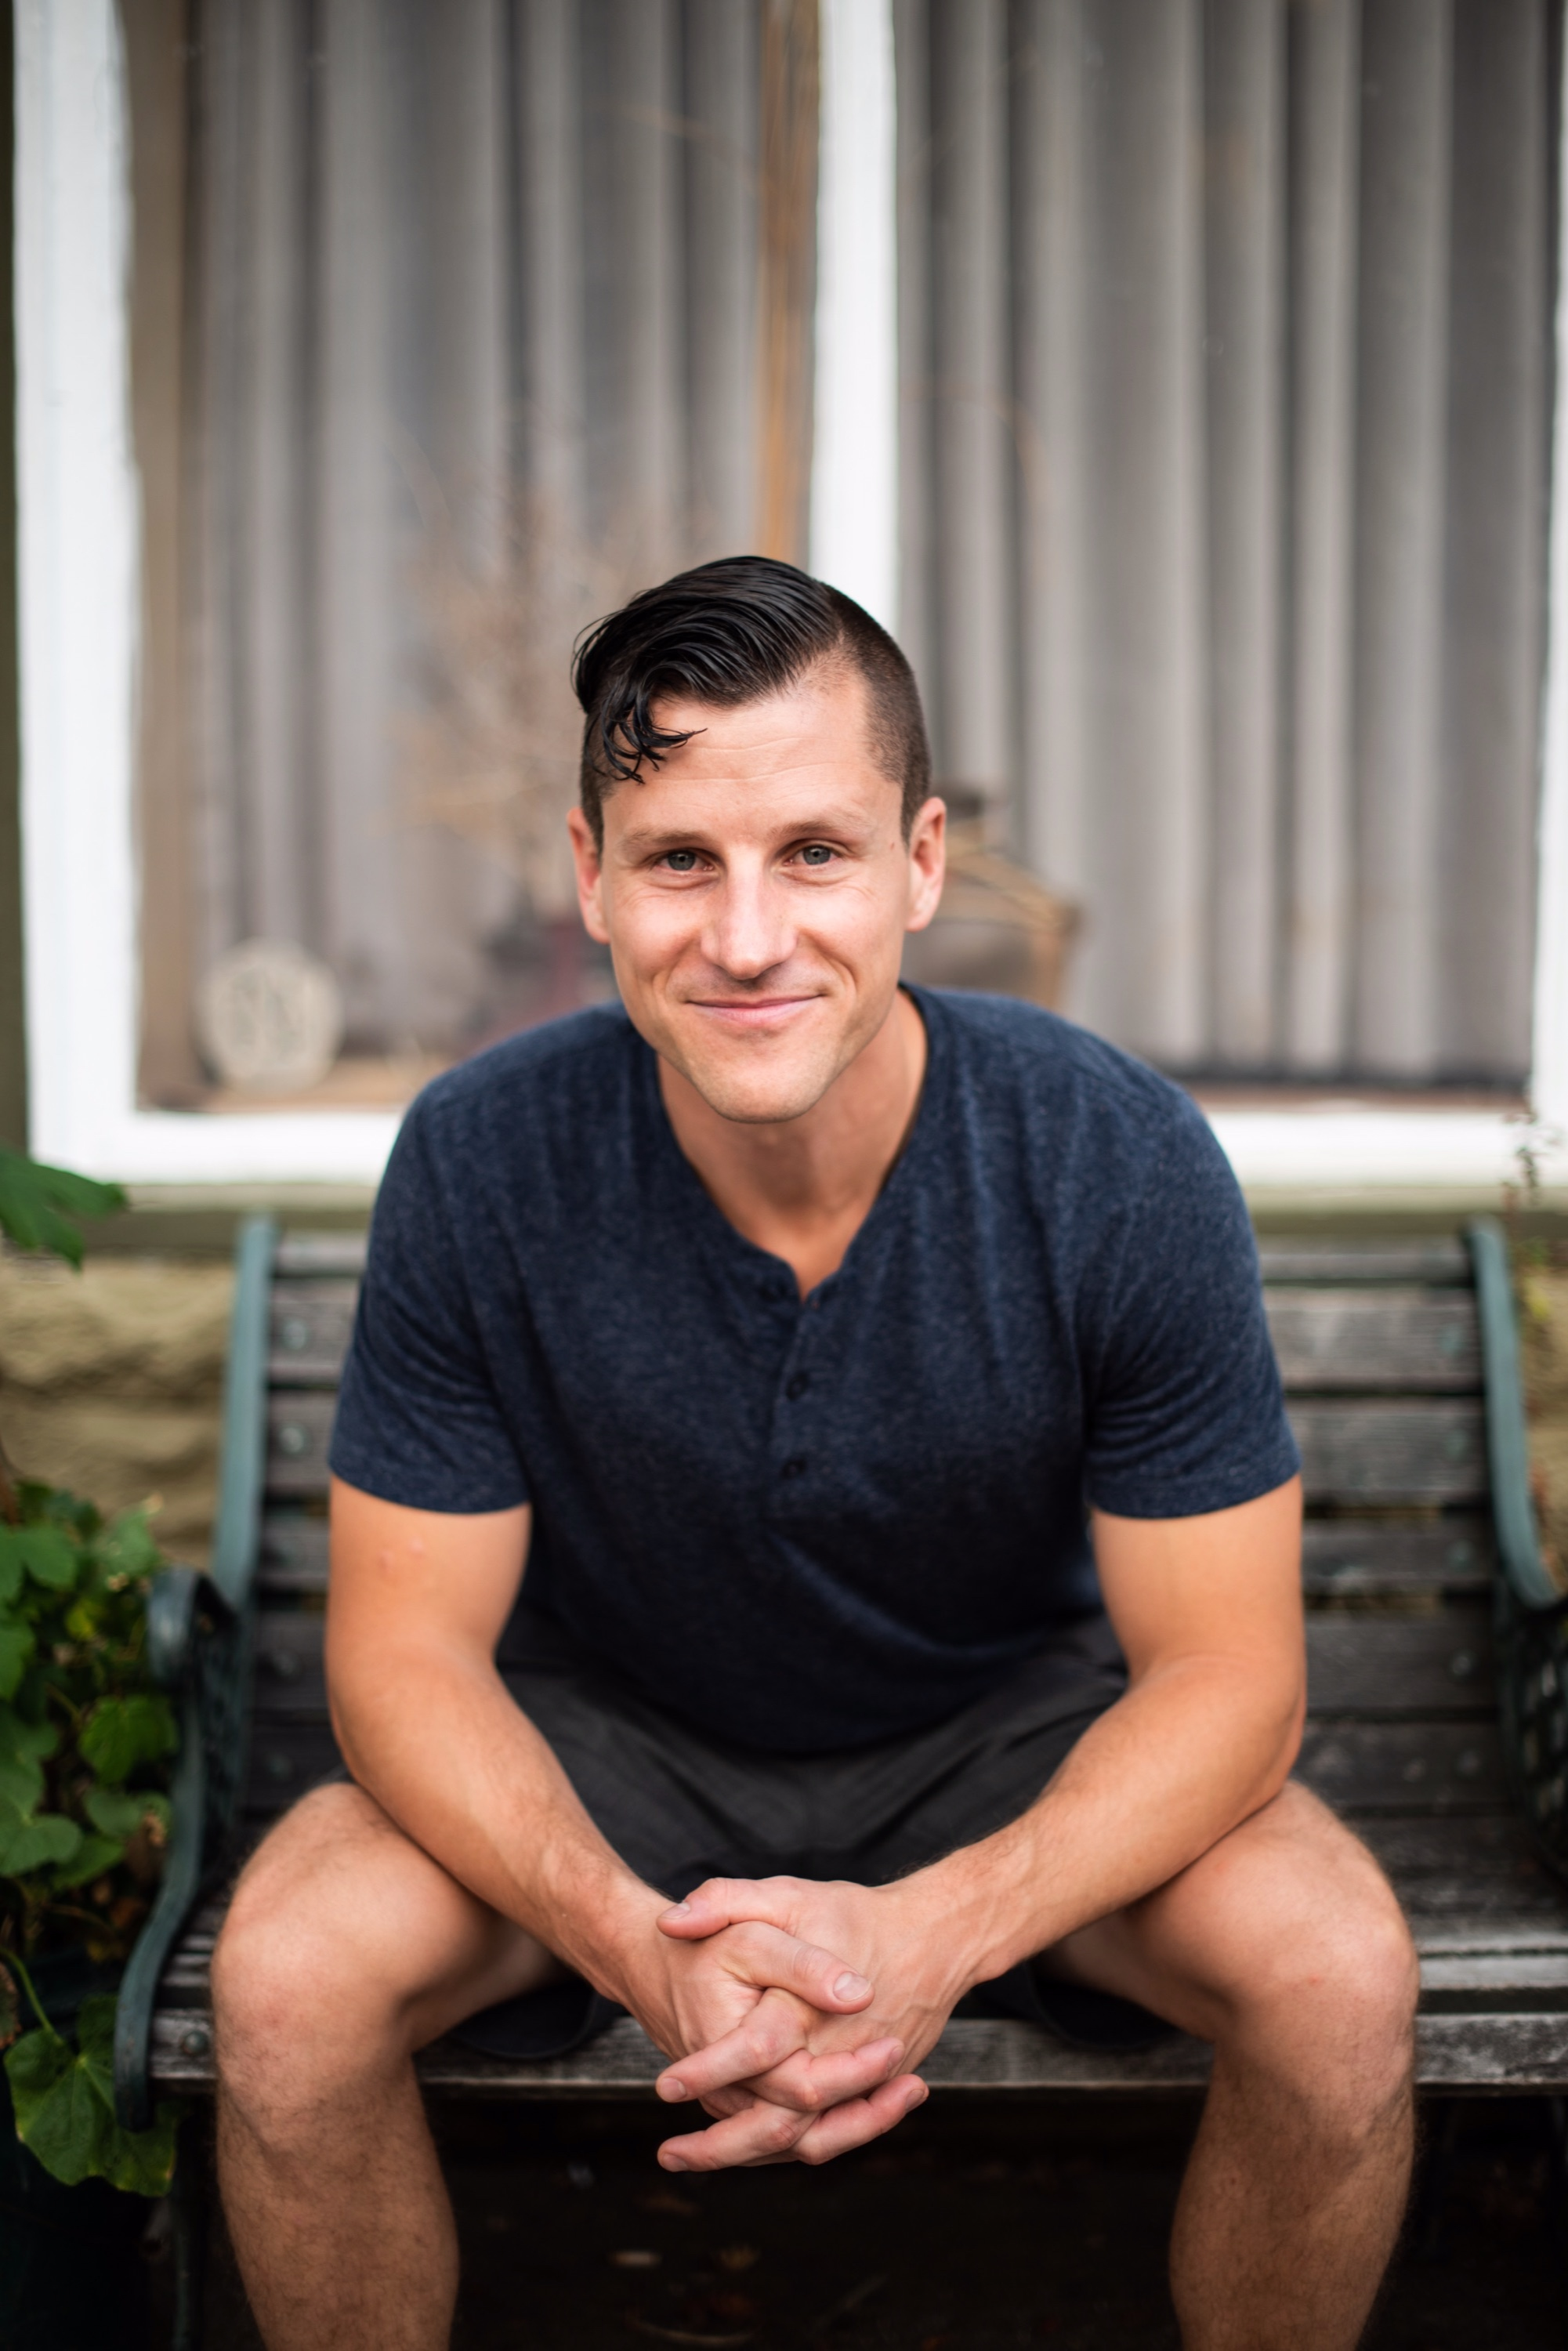 1 on 1 coaching with Ben for Addiction Recovery and Relationships